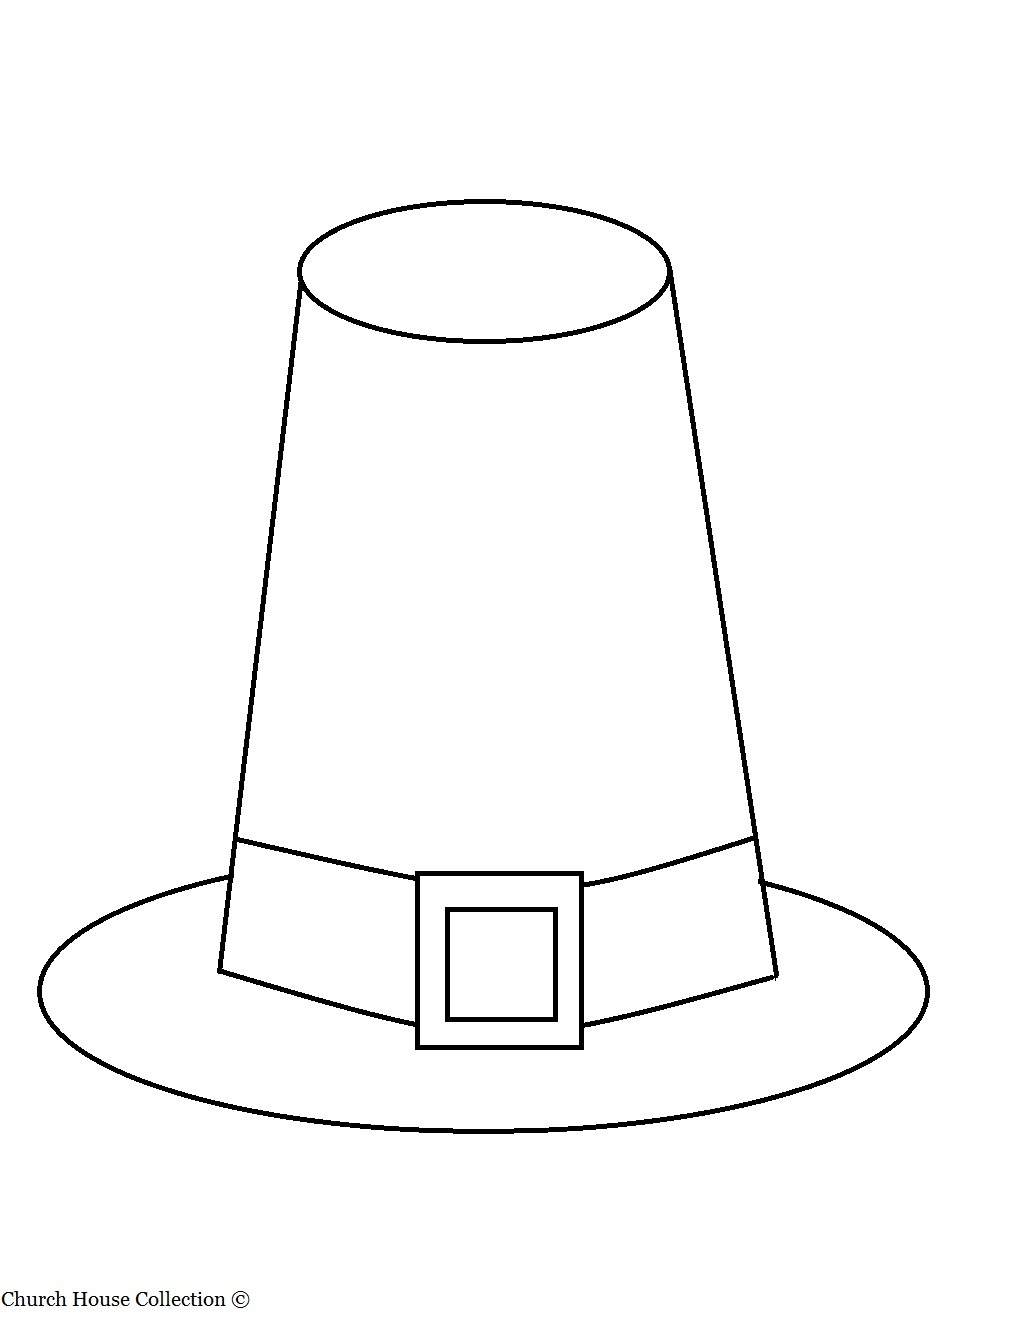 26 Images Of Pilgrim Hat Template For Drawing | Zeept - Free Printable Pilgrim Hat Pattern